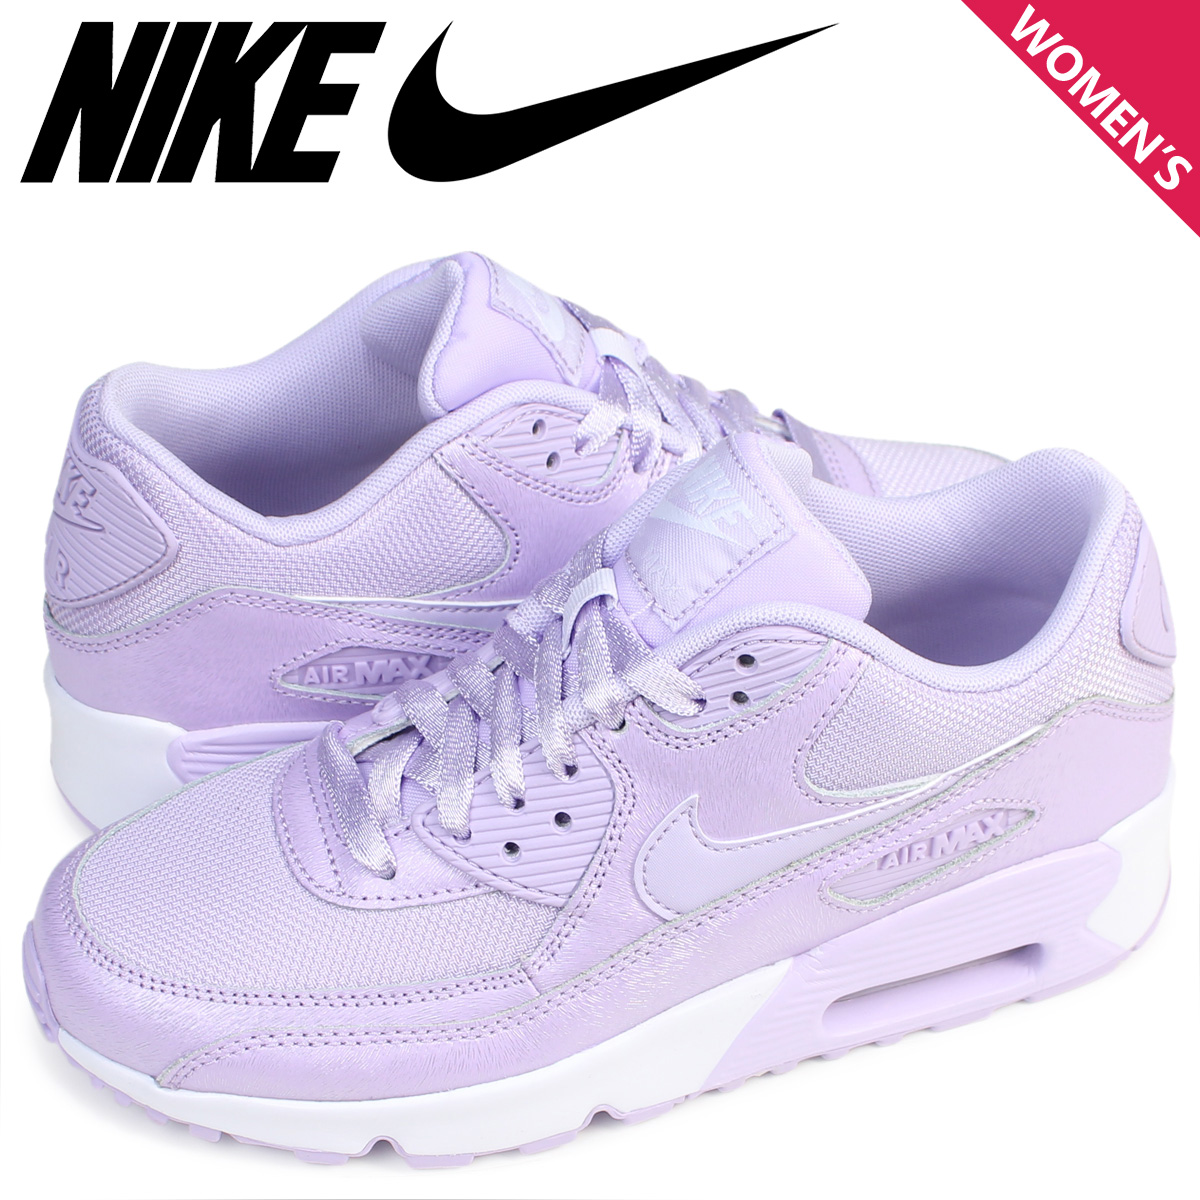 Nike Air Max 90 SE Mesh GS by Nike for 519.00 AED